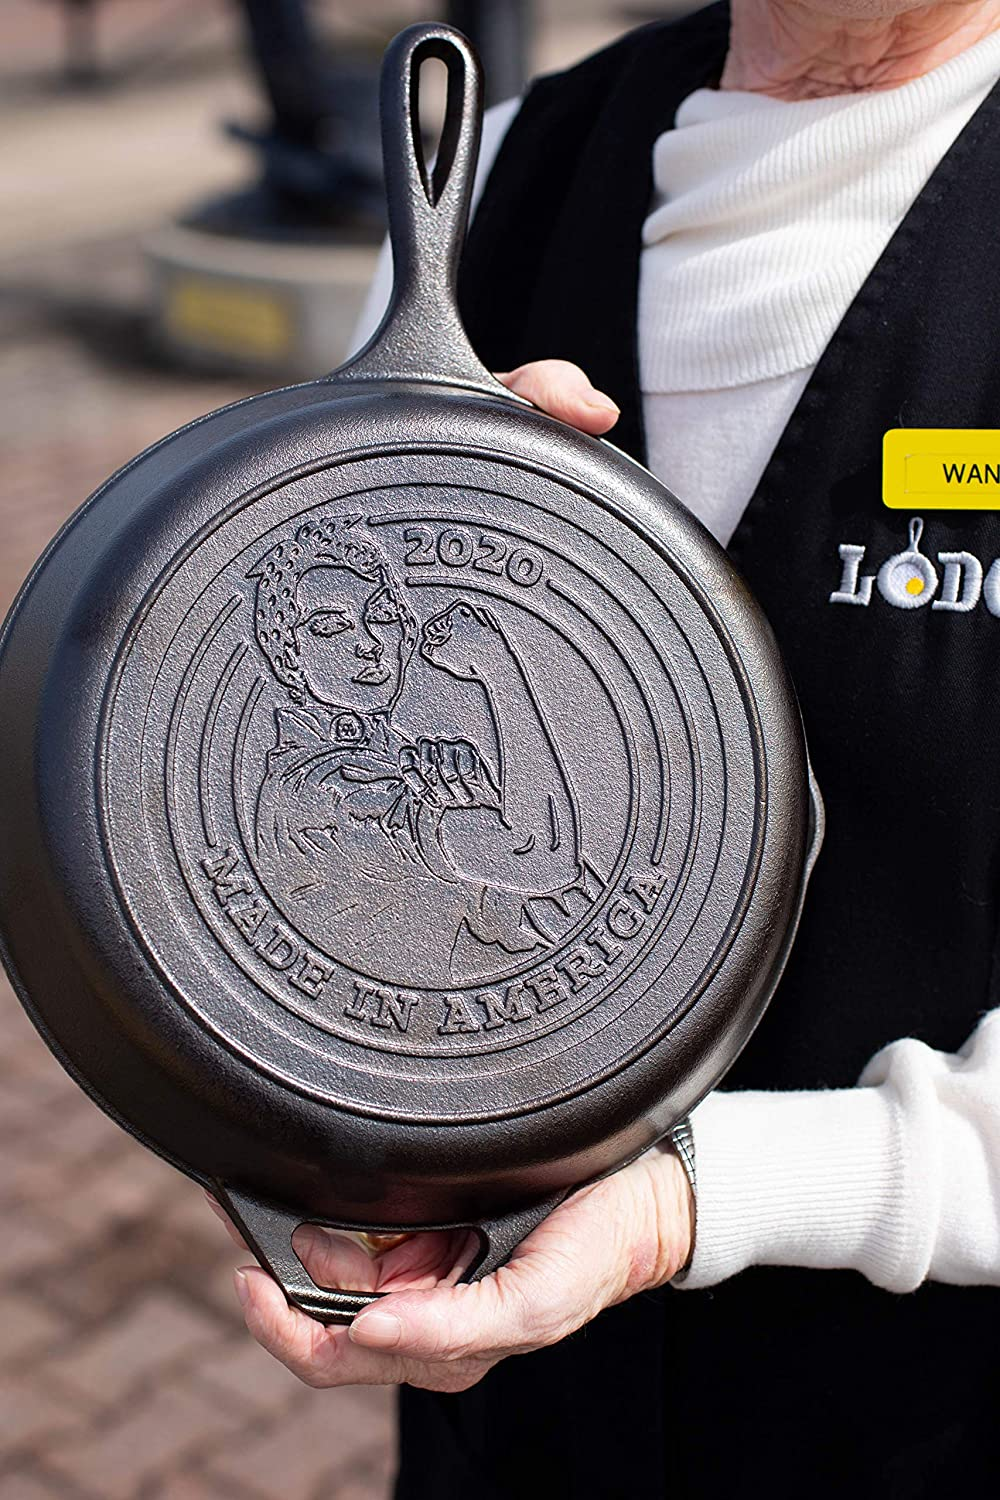 lodge rosie the riveter skillet, gifts for wife